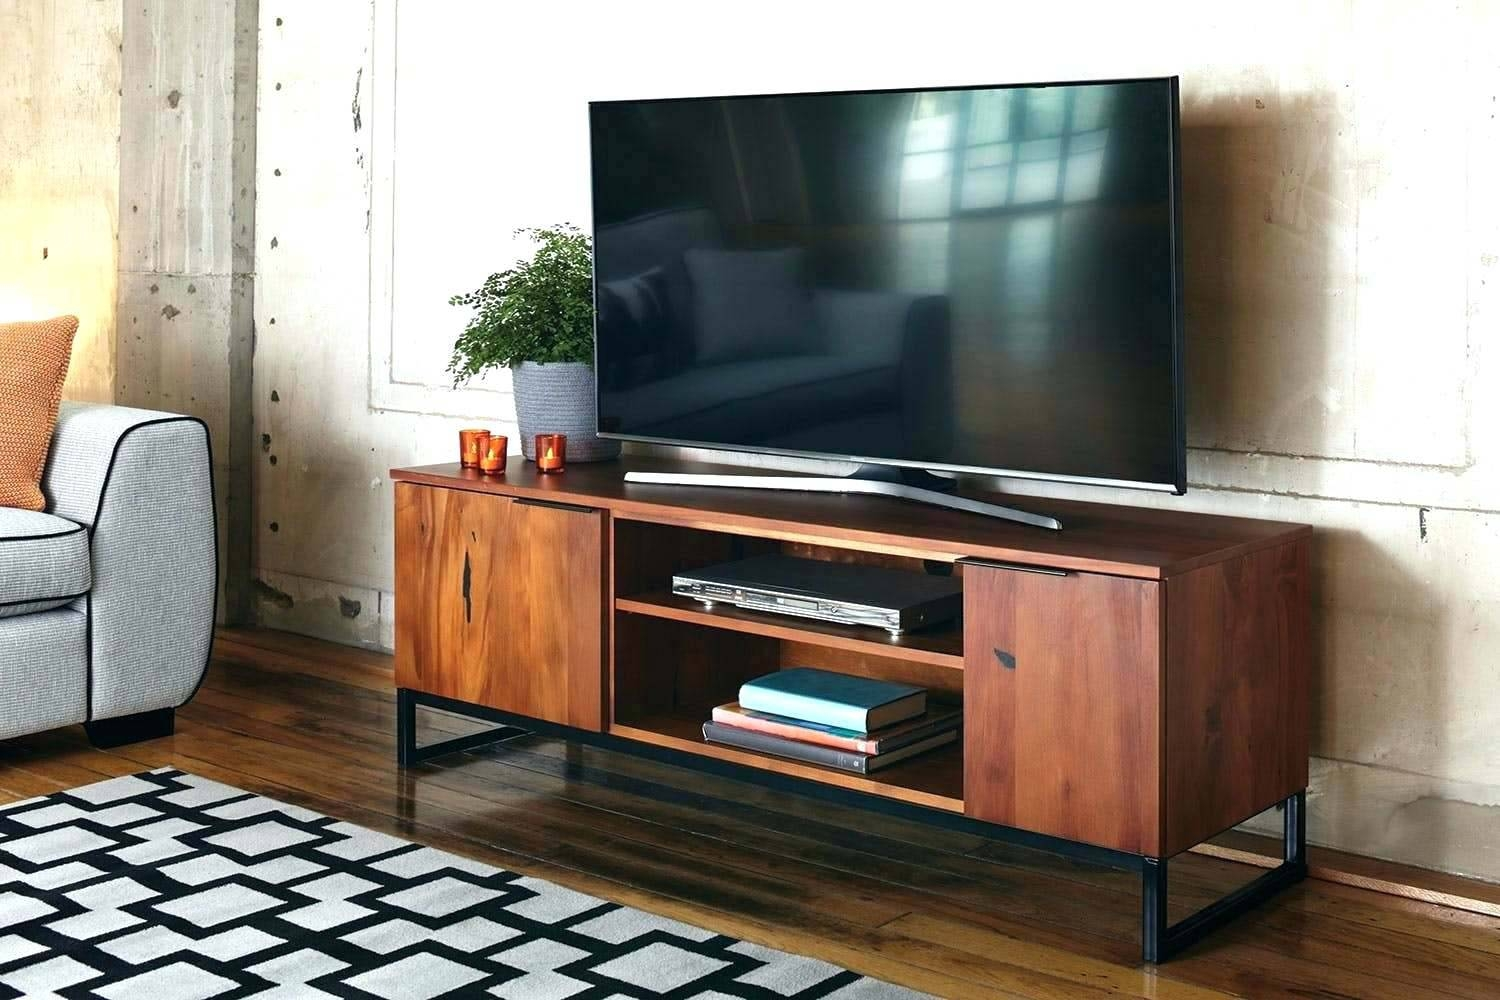 Tv Stand : 25 Chic Vertica Oak Low Contemporary Tv Stand Back in Honey Oak Tv Stands (Image 8 of 15)